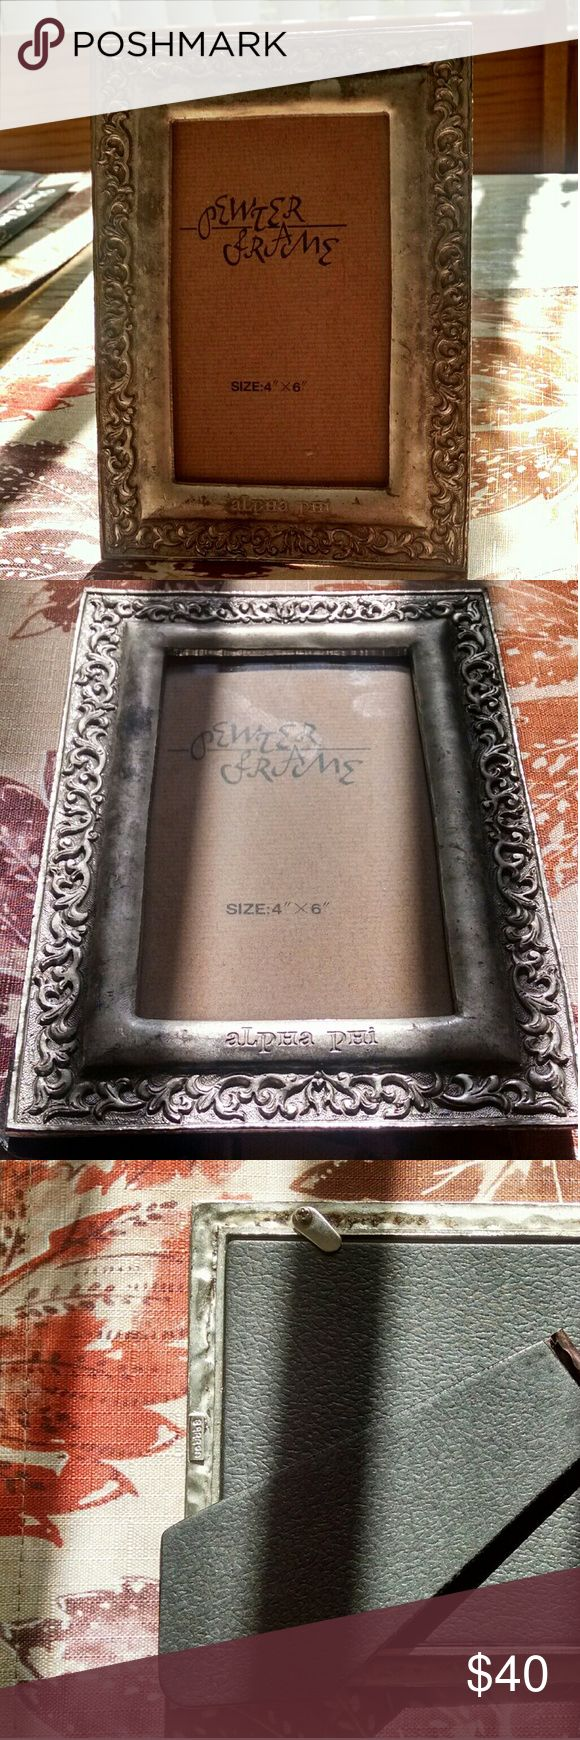 "📷 Alpha Phi Pewter Picture Frame Alpha Phi Pewter Picture Frame. Fits 4""x6"" photos. Good sturdy weight with an antiqued brushed silver look and scroll border design. No flaws.   Reasonable offers considered. Add to a bundle for discounted shipping. Thanks for shopping my closet! Barron Other"